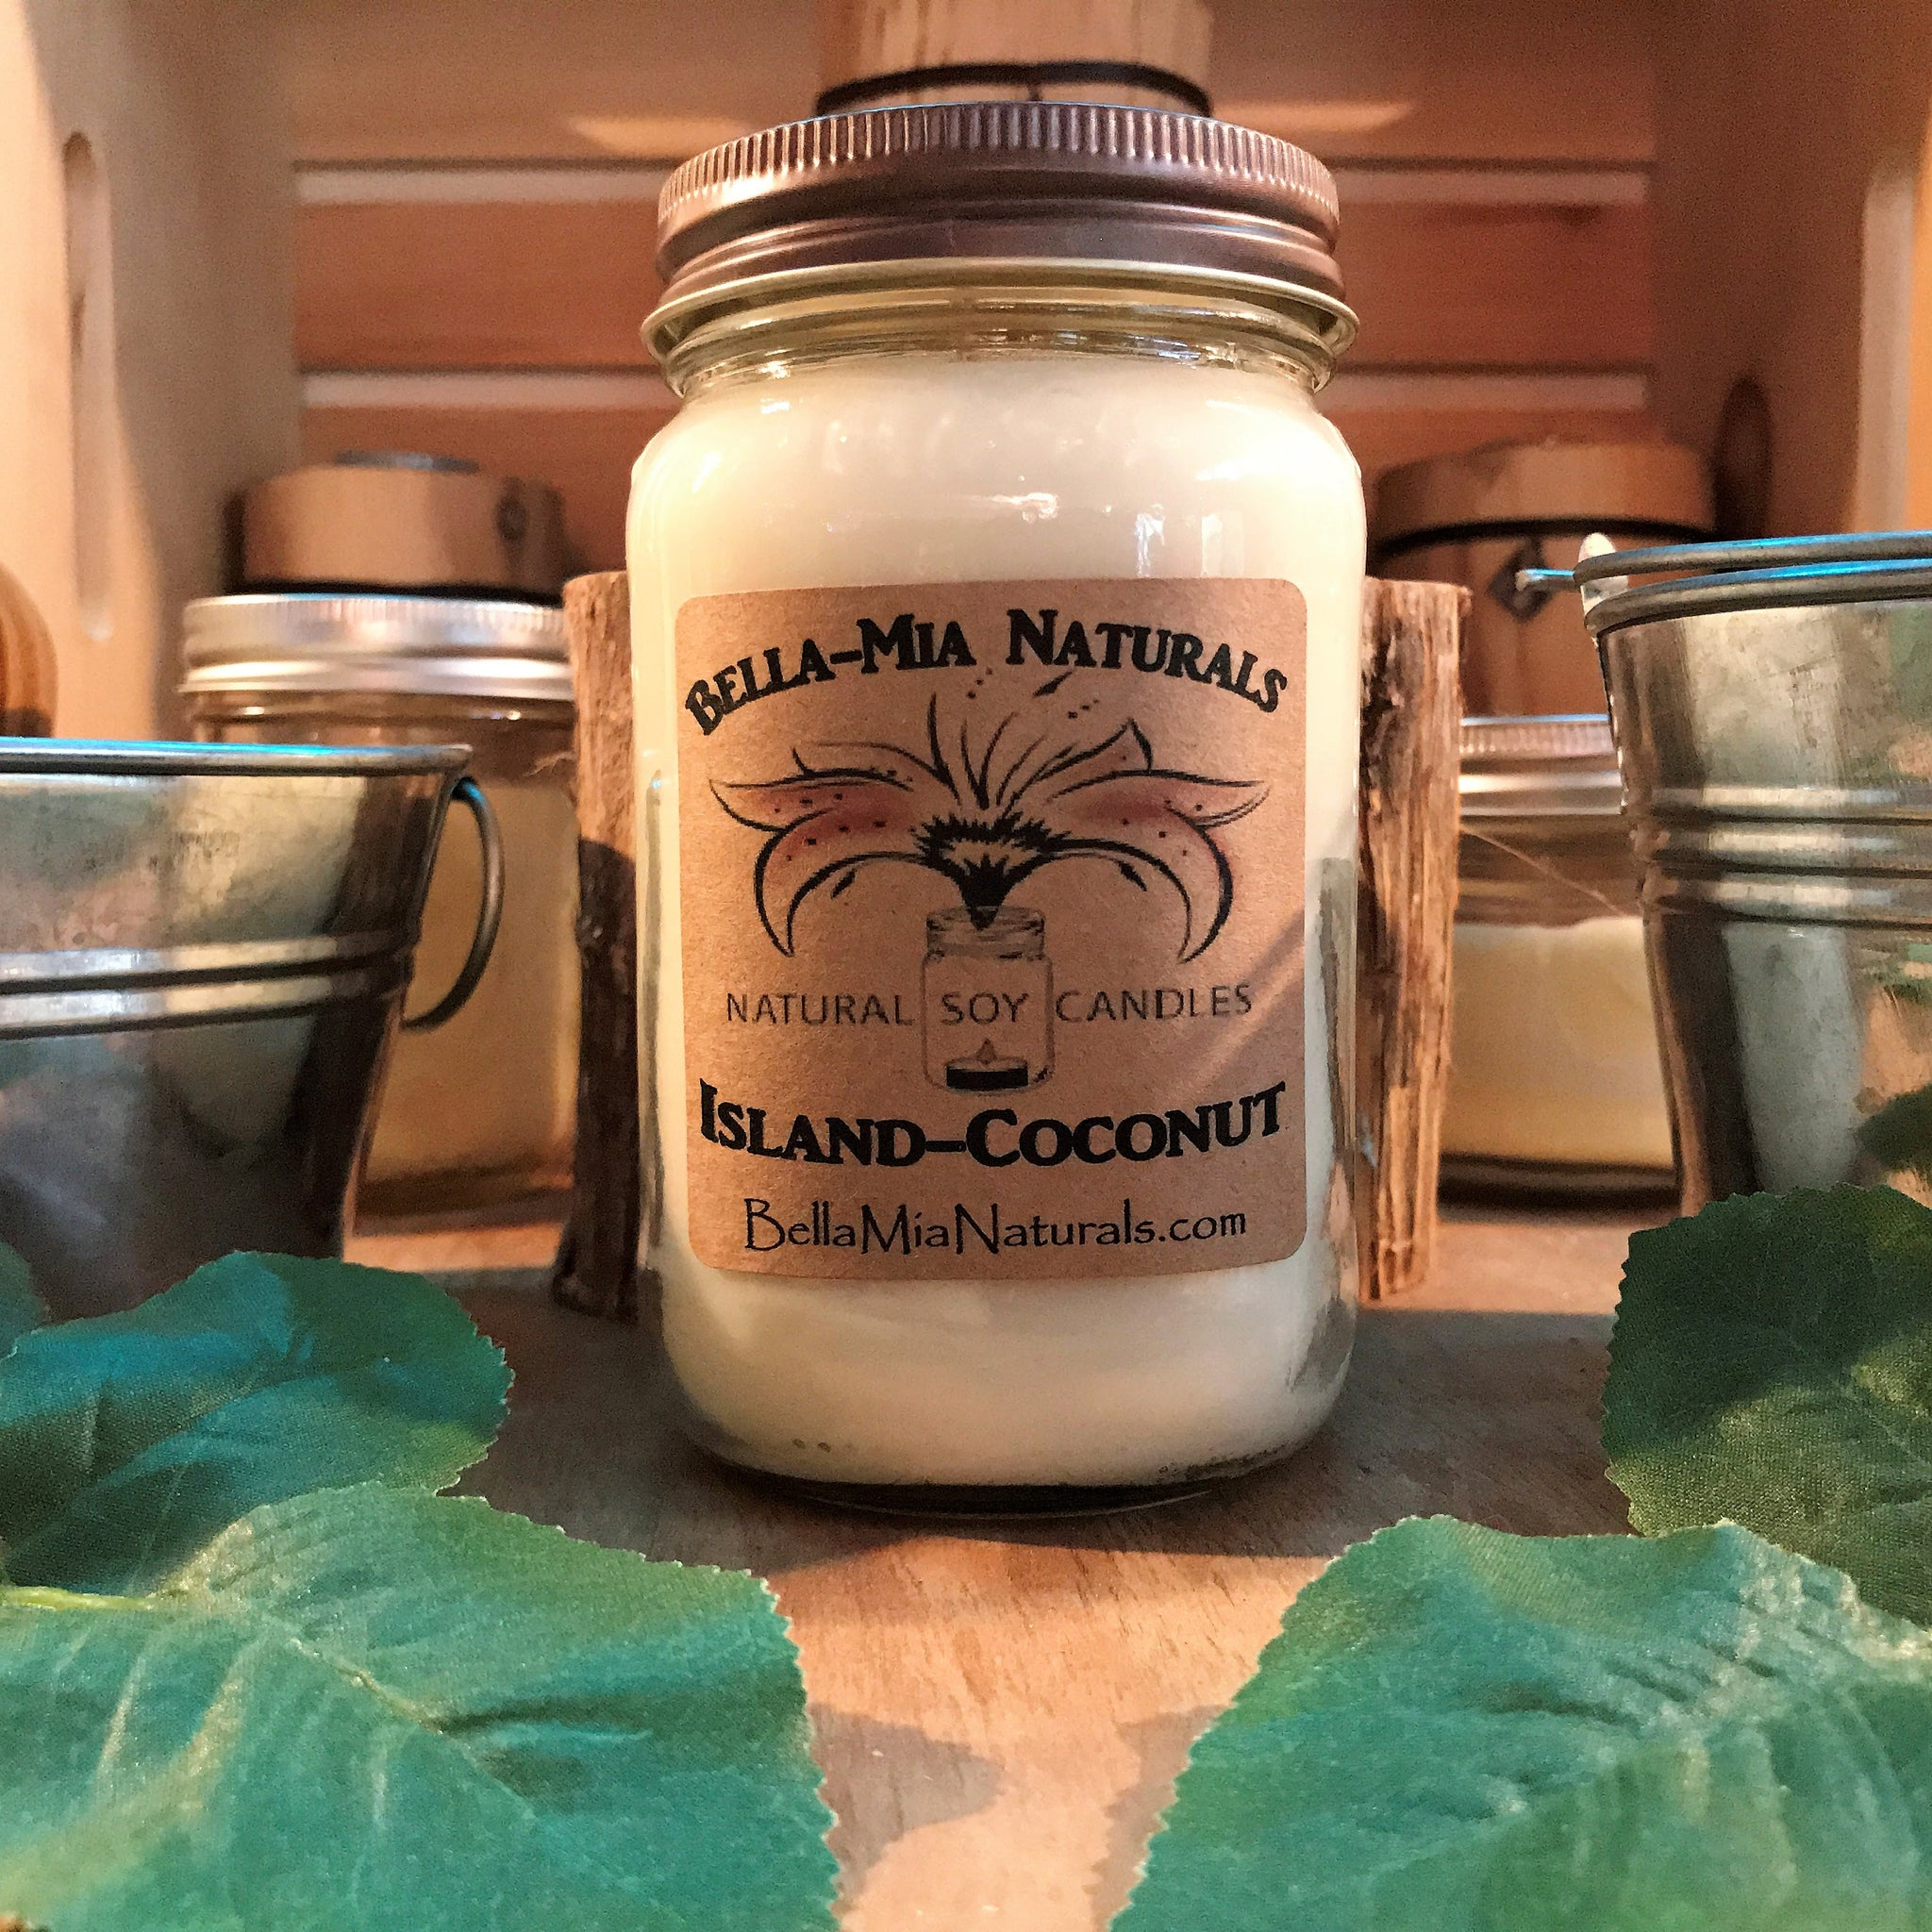 Island-Coconut Natural Hand Poured Soy Candles